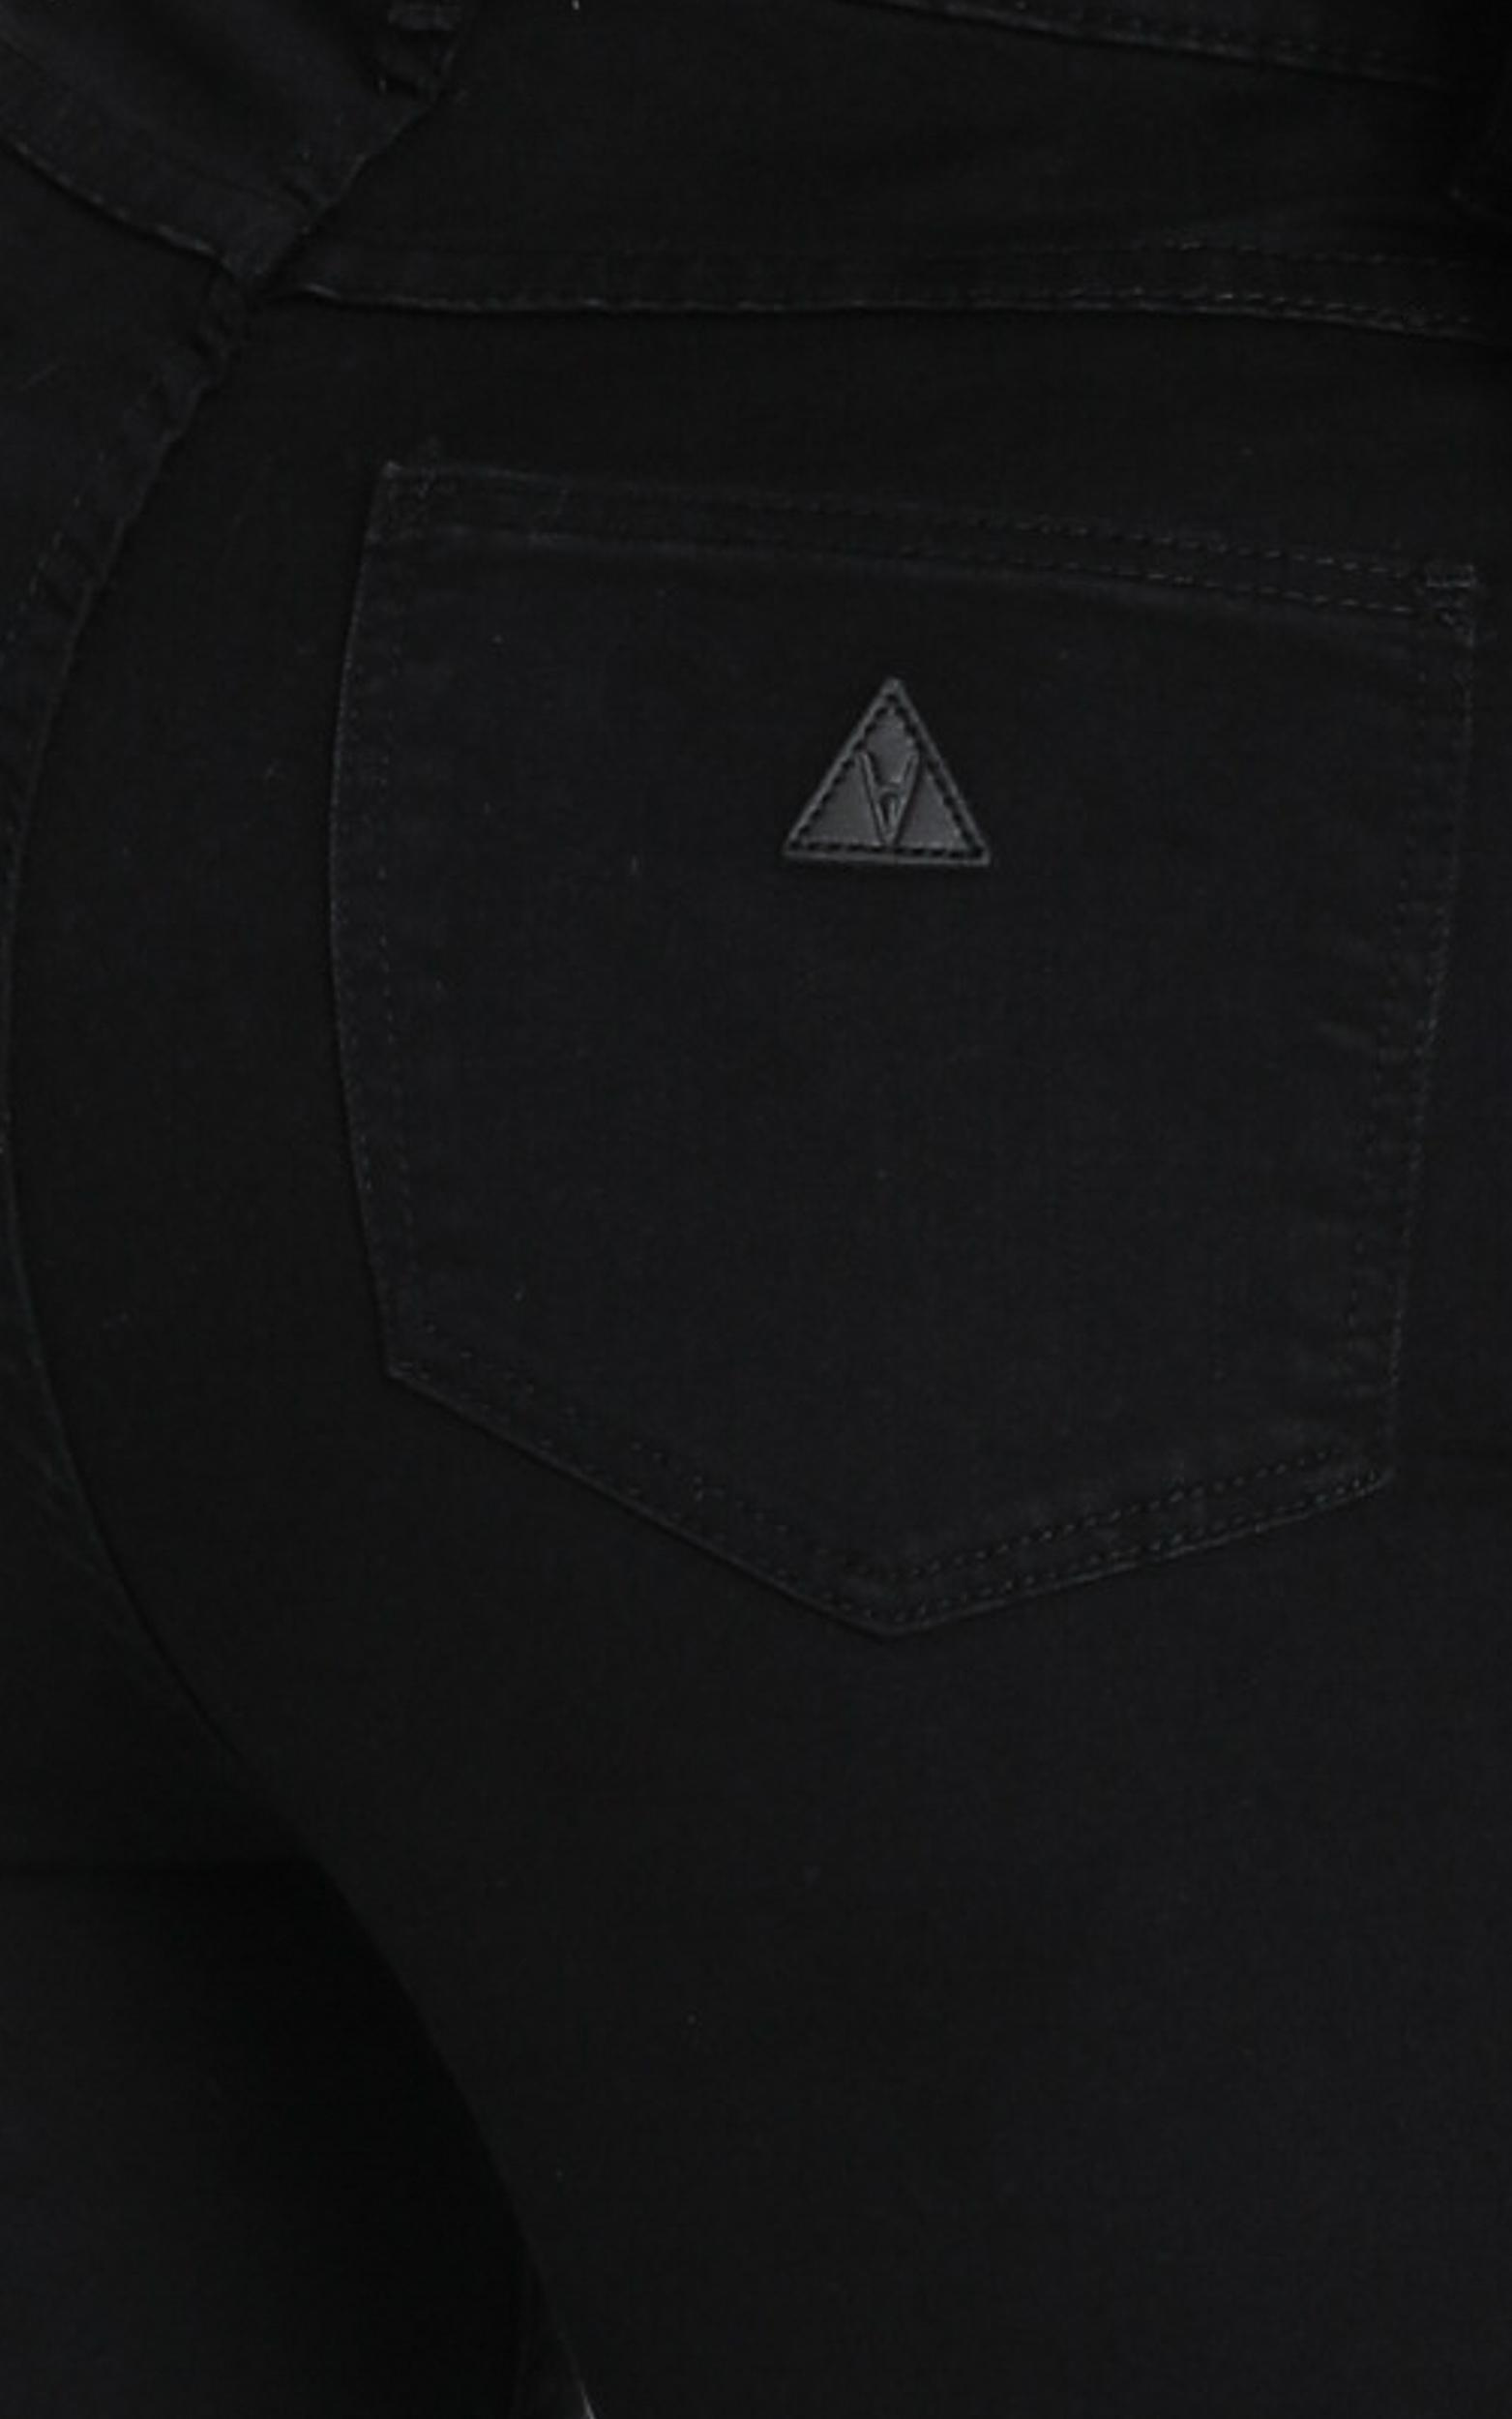 Abrand - A High Skinny Ankle Basher Jeans in black magic - 14 (XL), Black, hi-res image number null